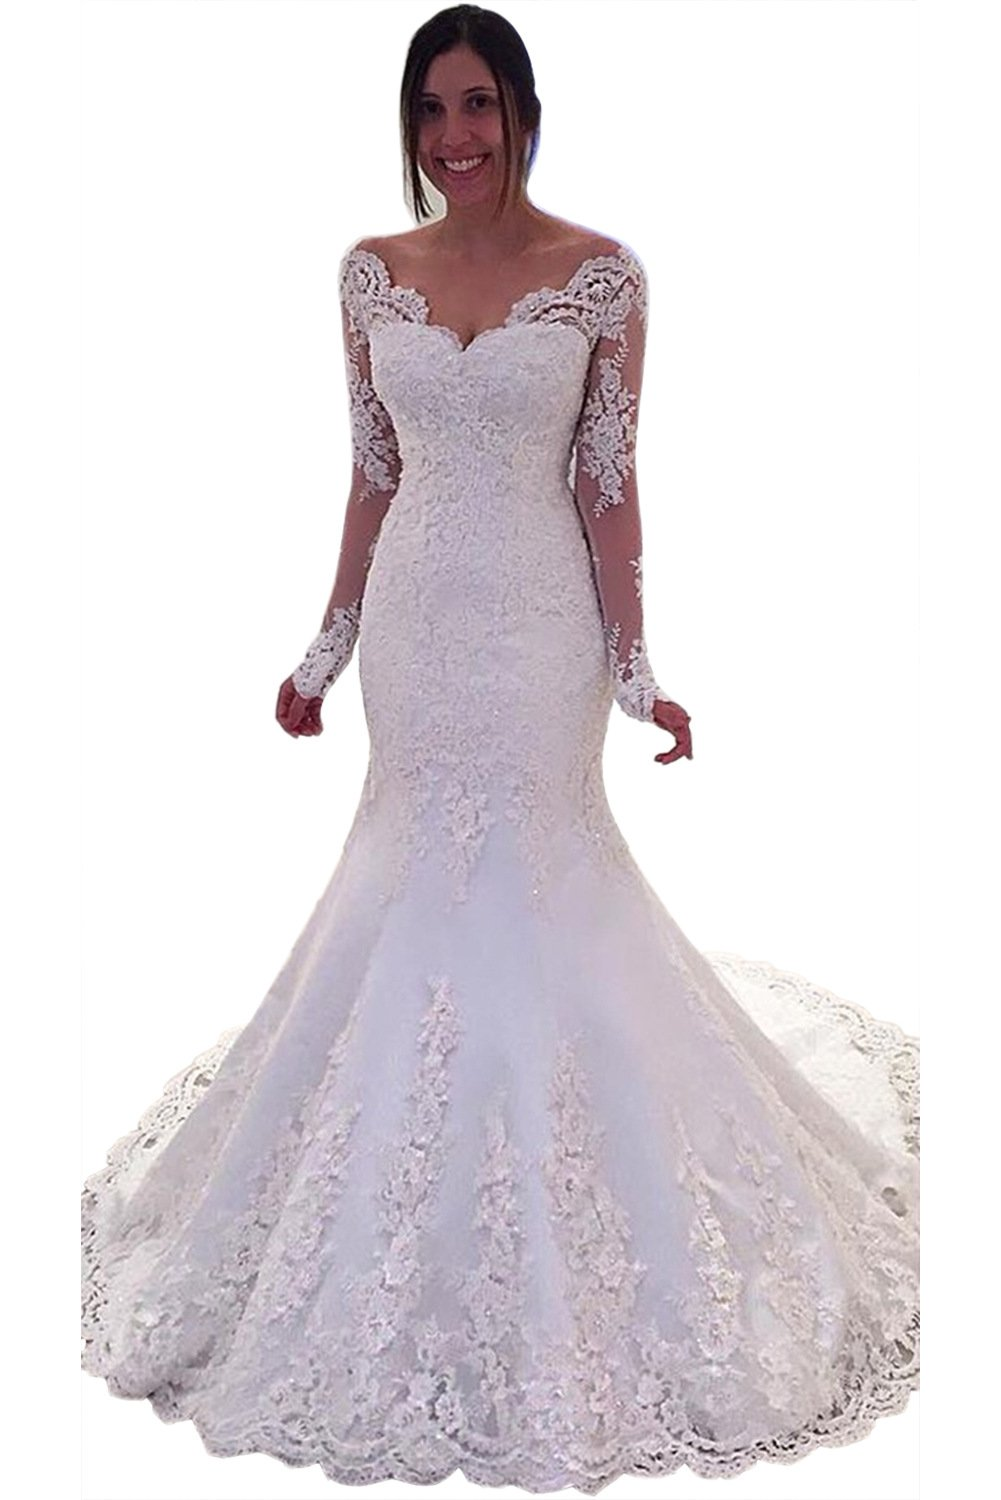 MARSEN Women's off Shoulder Formal Gown Bride Long Sleeve Mermaid Wedding Dress White Size 12